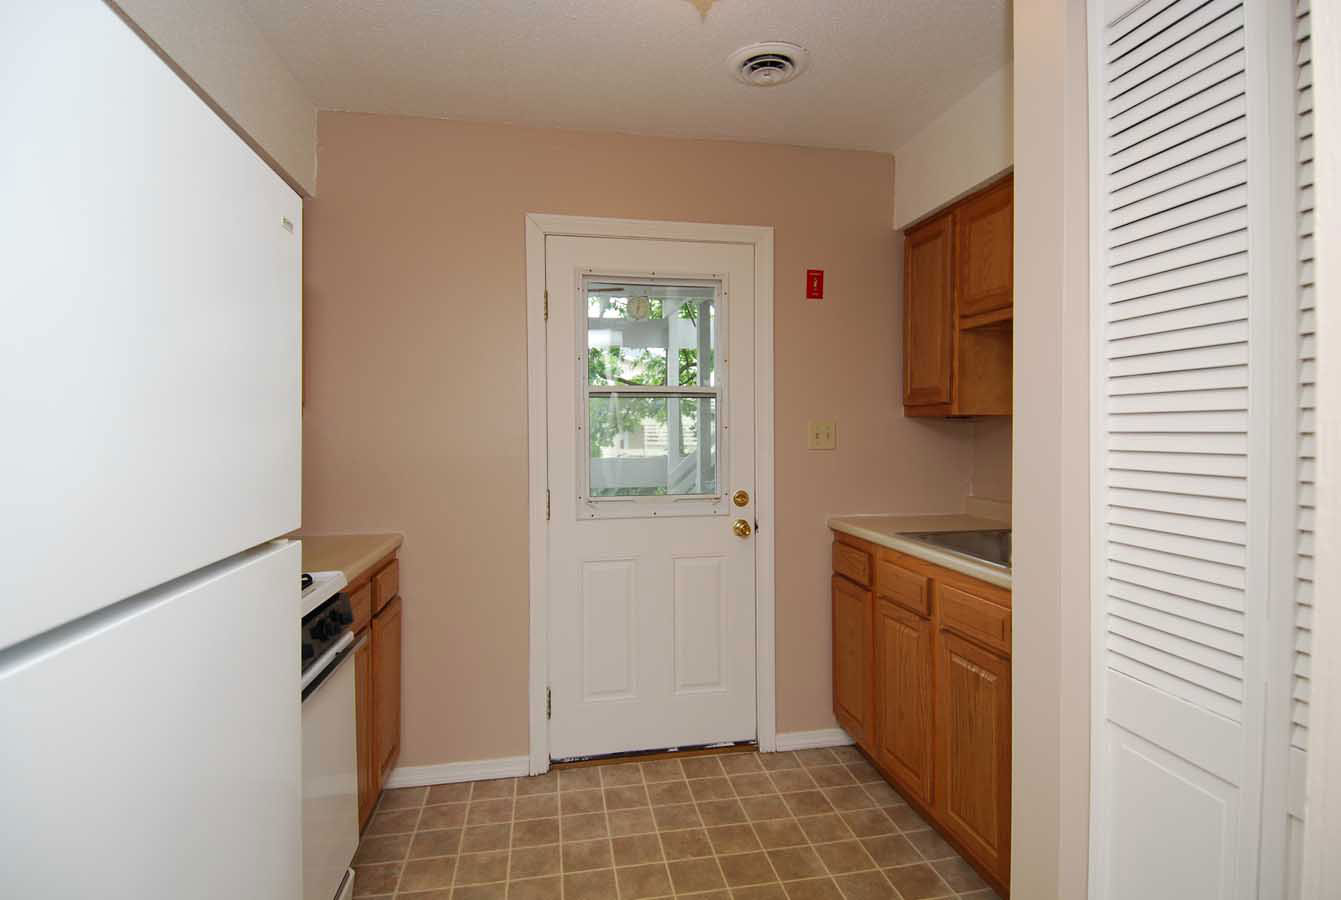 2 Bedroom Apartment in Manchester NH at Wellington Terrace Apartments